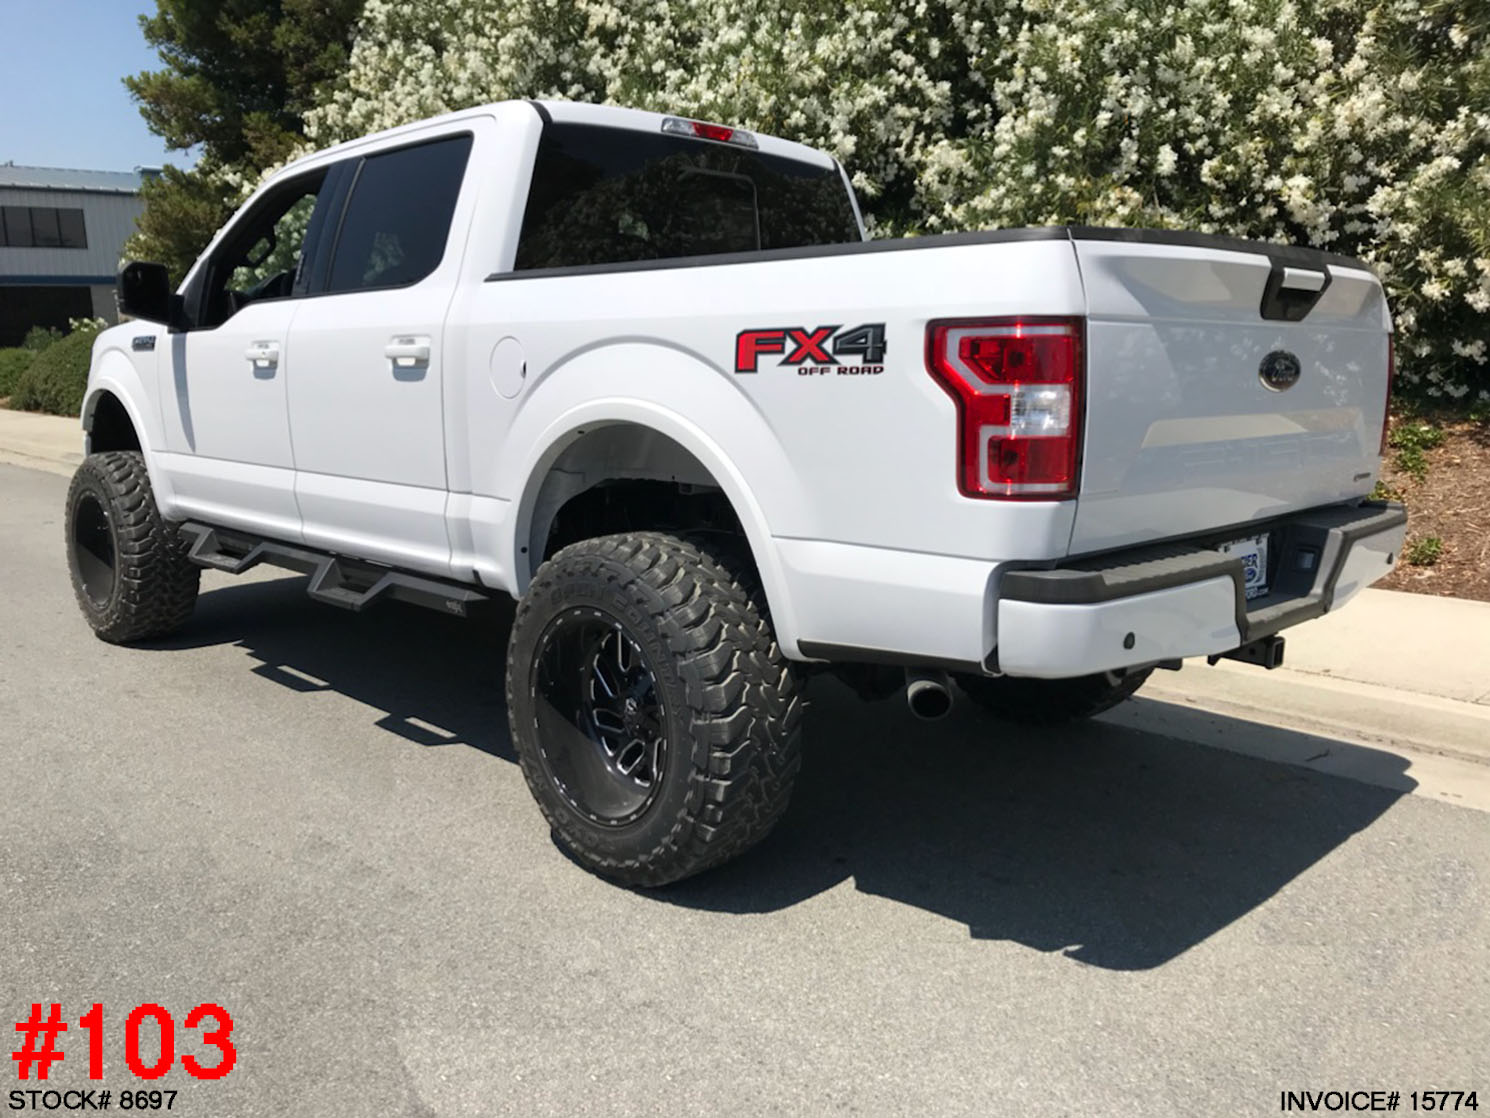 2018 Ford F150 Crew Cab 8697 Truck And Suv Parts Warehouse